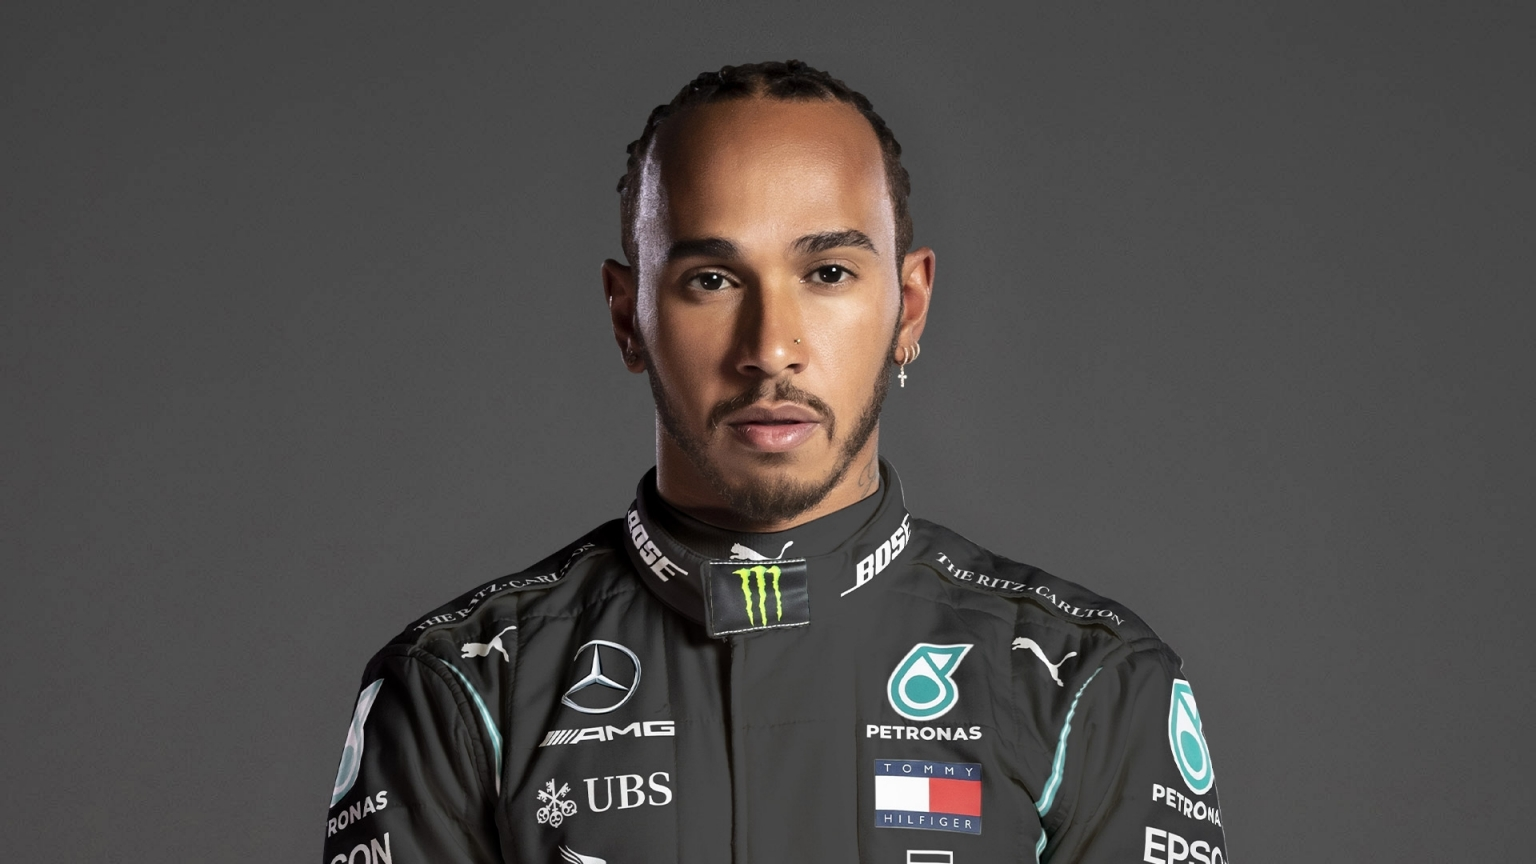 Lewis Hamilton will continue with Mercedes in 2021, yet to decide about his retirement.